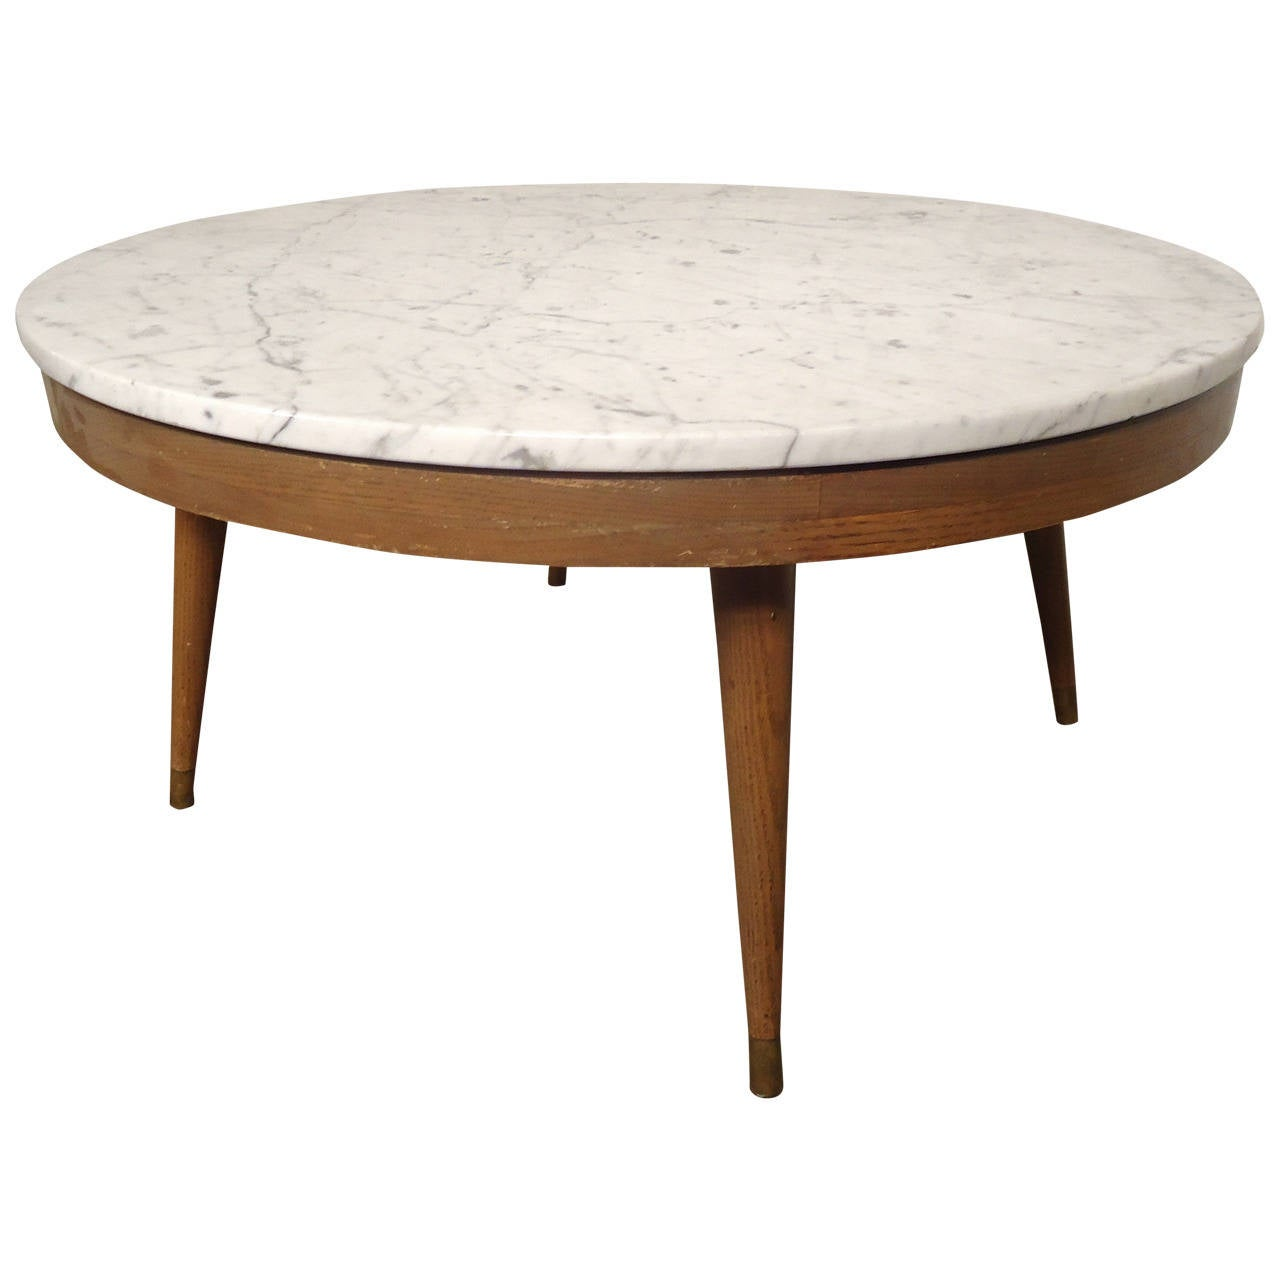 Paul mccobb inspired coffee table with marble top at 1stdibs for Stone topped coffee tables